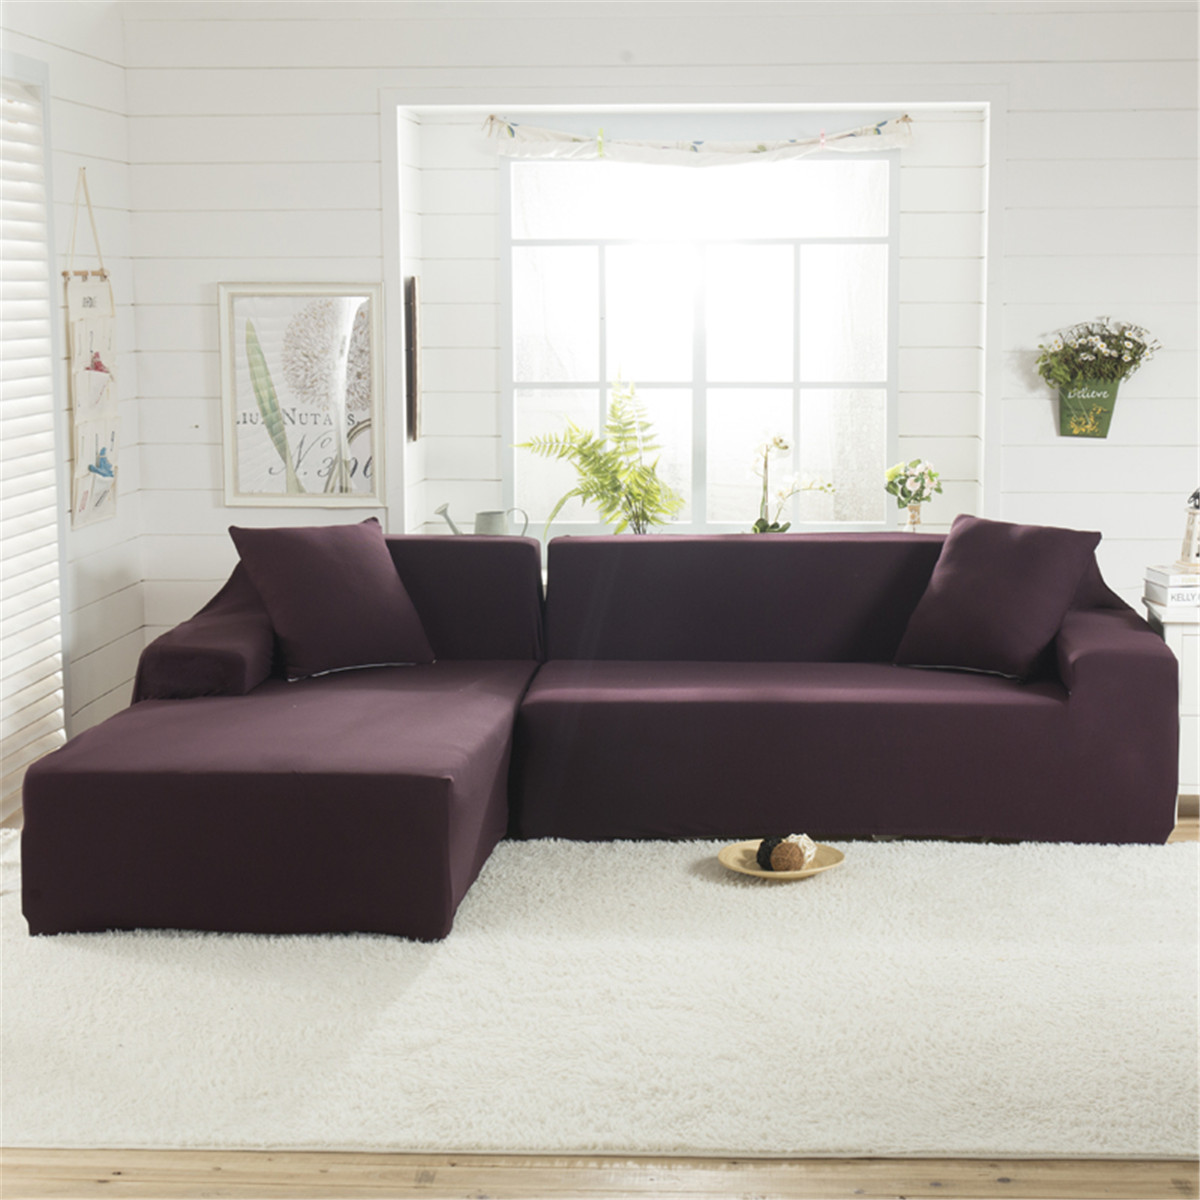 L Shape Couch Cover Stretch Elastic Fabric Sofa Cover Pet Sectional Corner Chair Covers